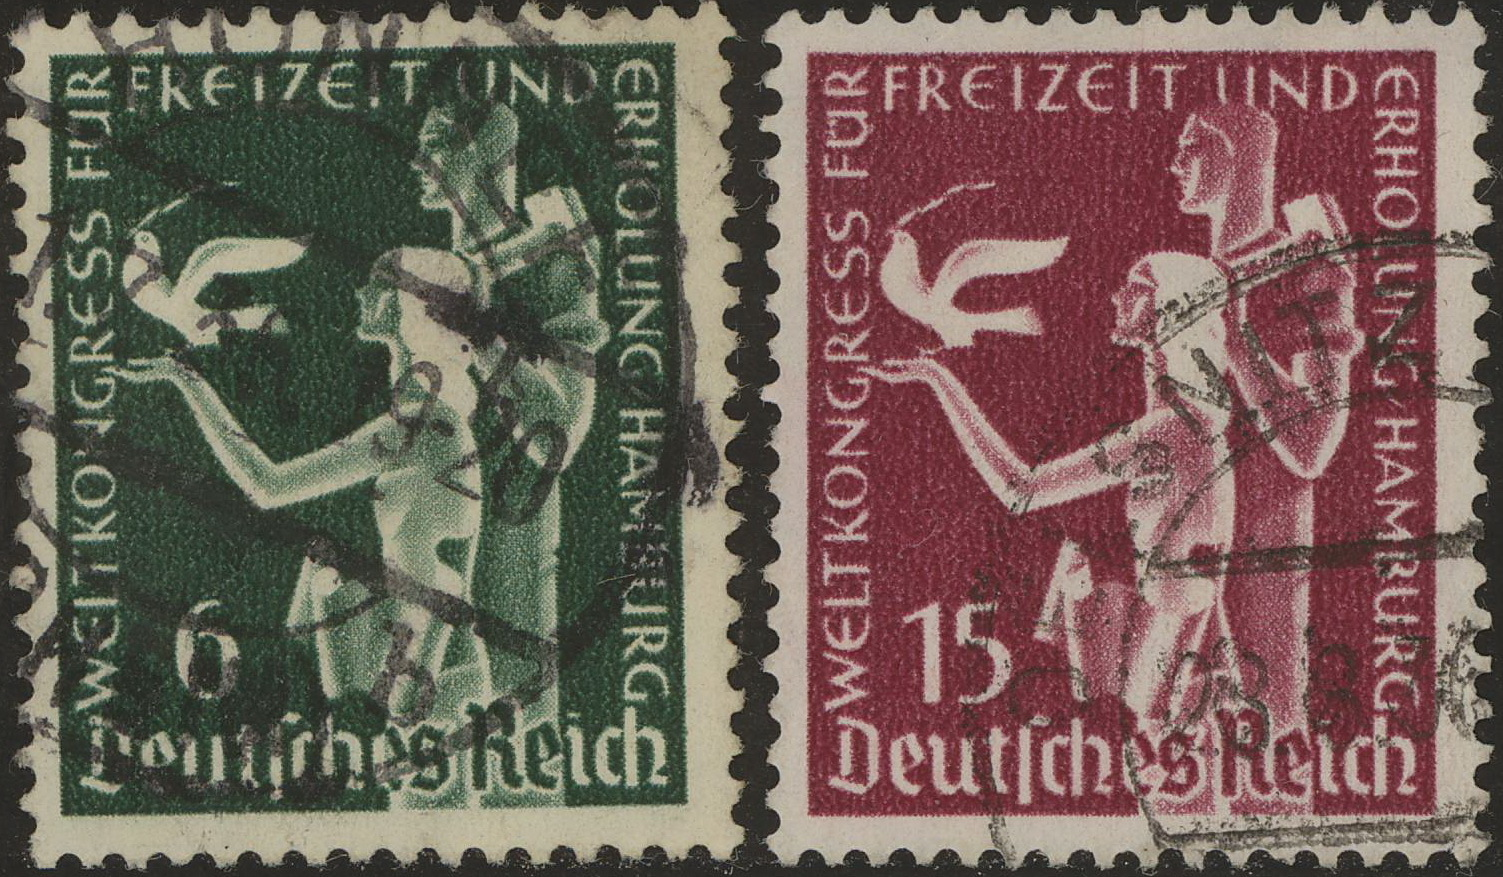 1936 - GER - SG619-20 Hamburg Recreational (2) VFU